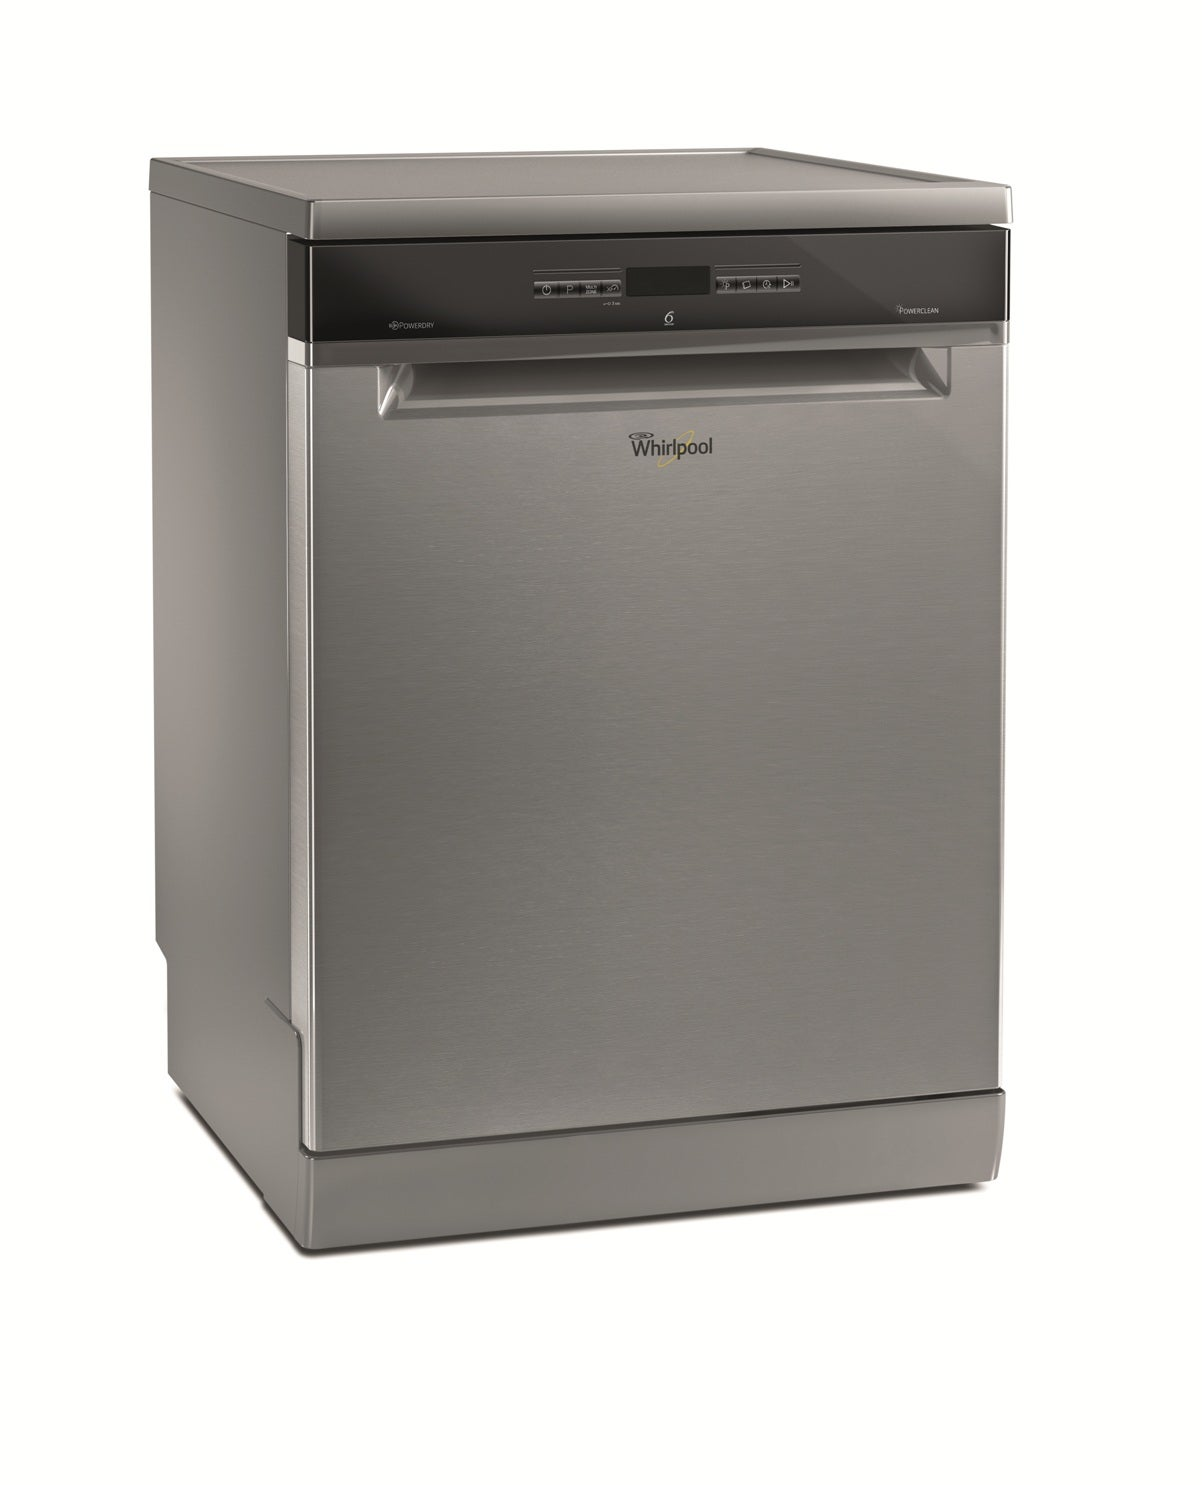 come clean whirlpool 39 s 6th sense dishwasher. Black Bedroom Furniture Sets. Home Design Ideas